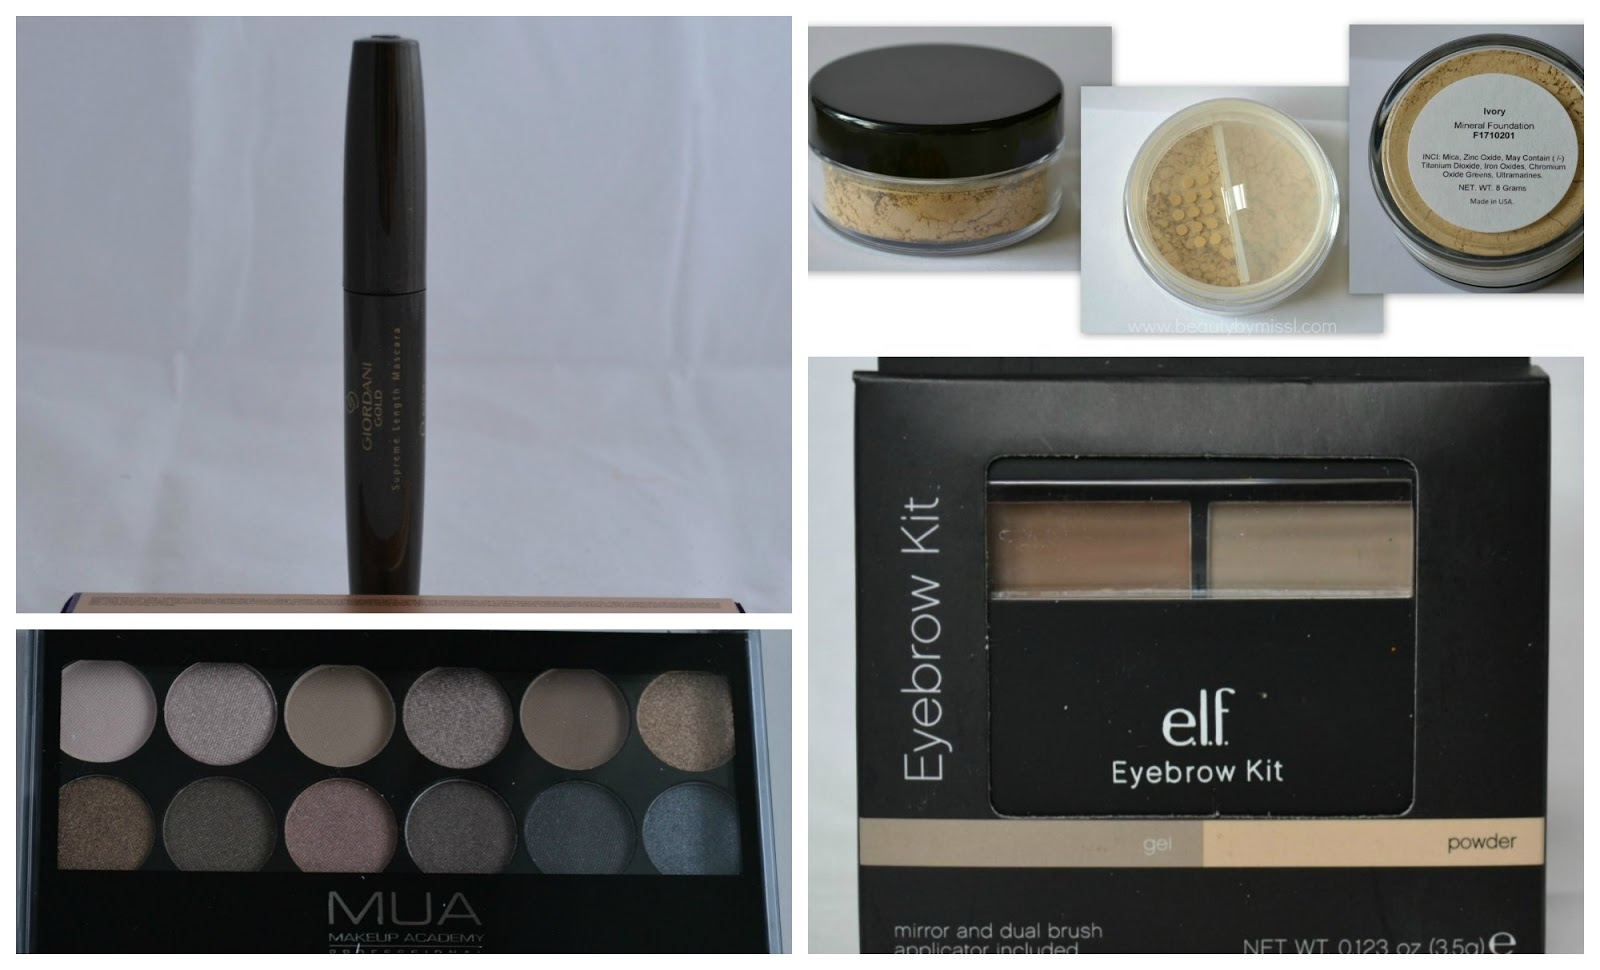 Oriflame Giordani Gold Supreme Length mascara, MUA Makeup Academy Undressed Palette, e.l.f. Eyebrow Kit, mineral foundation